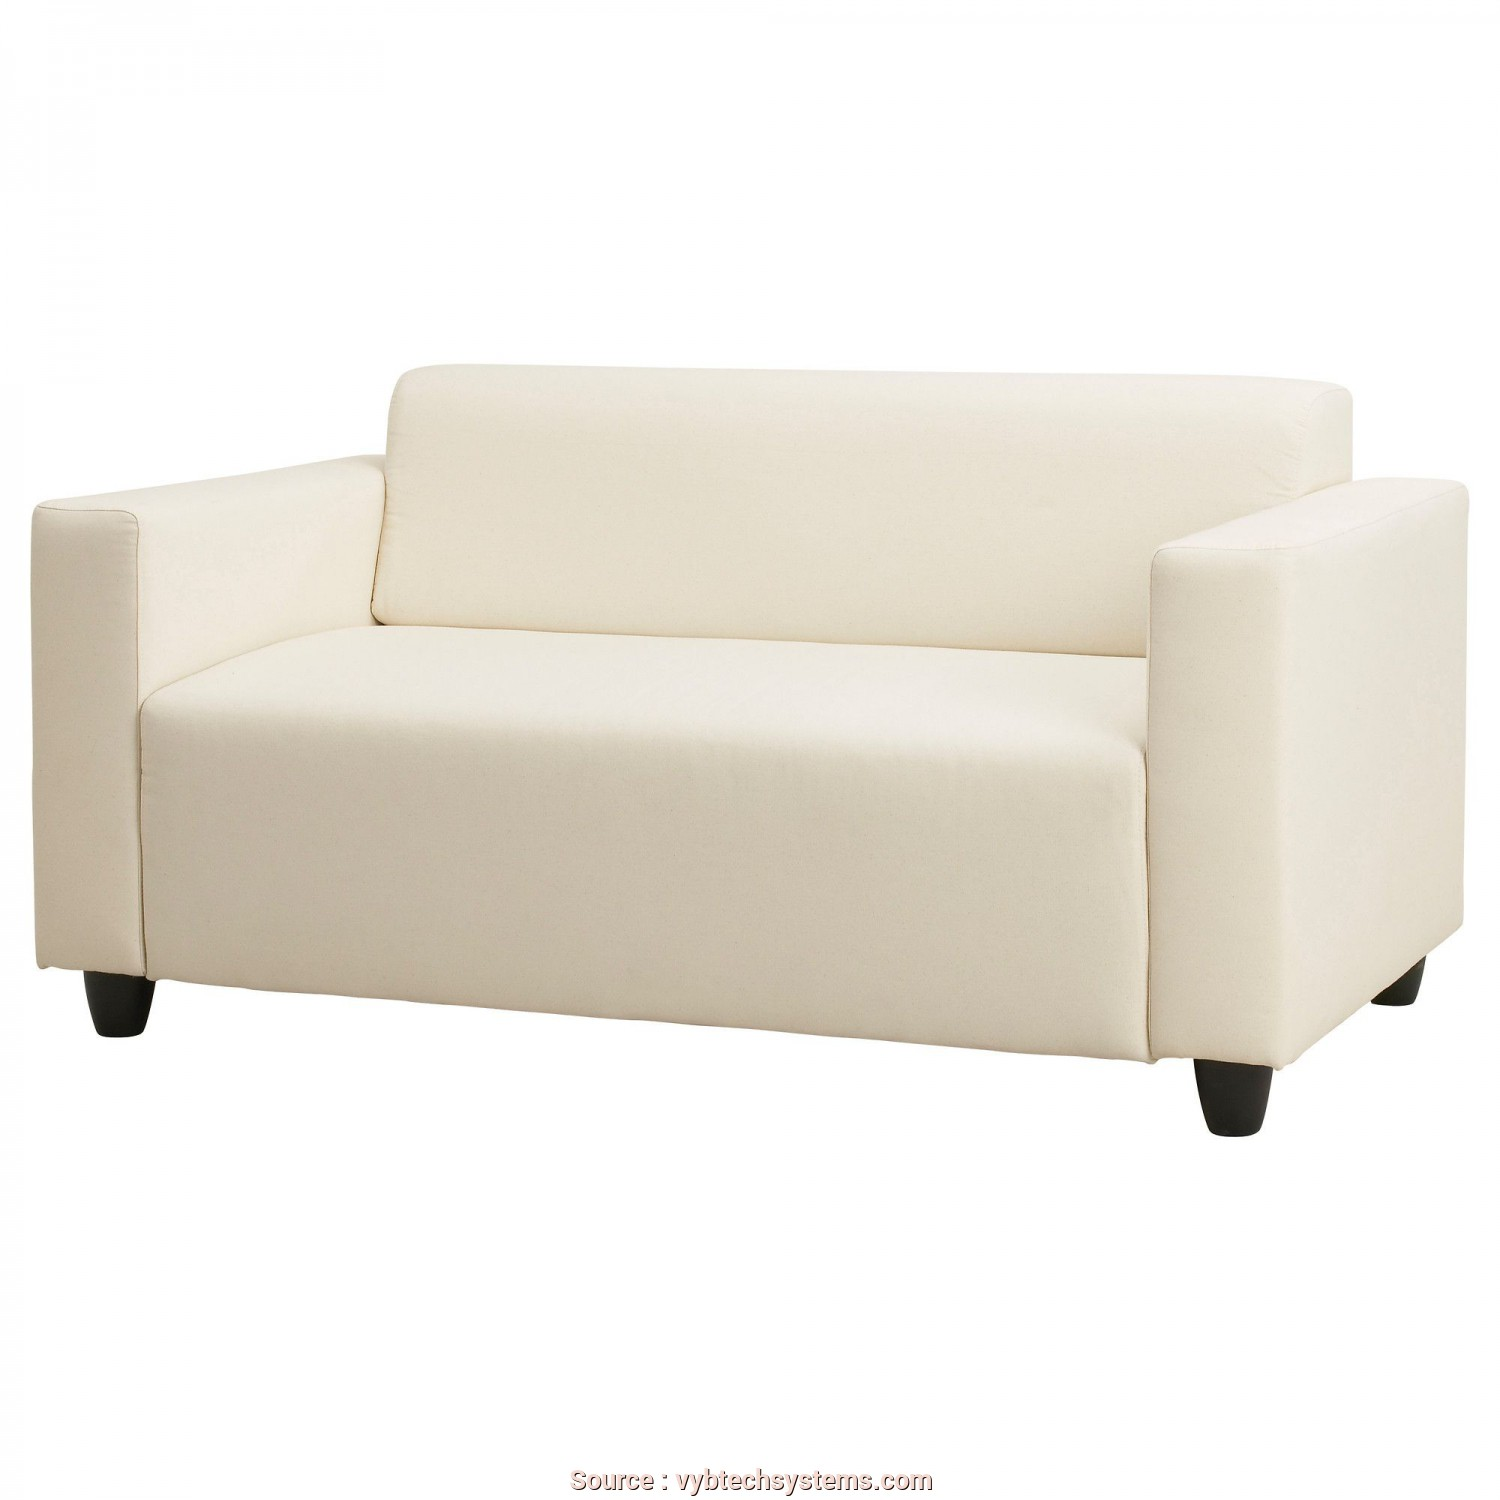 Ikea Klippan 2 Seater Sofa Review, Semplice Ikea Sofas, Loveseats Modern KLOBO, Seat Sofa IKEA Office Pinterest Designs Throughout 1